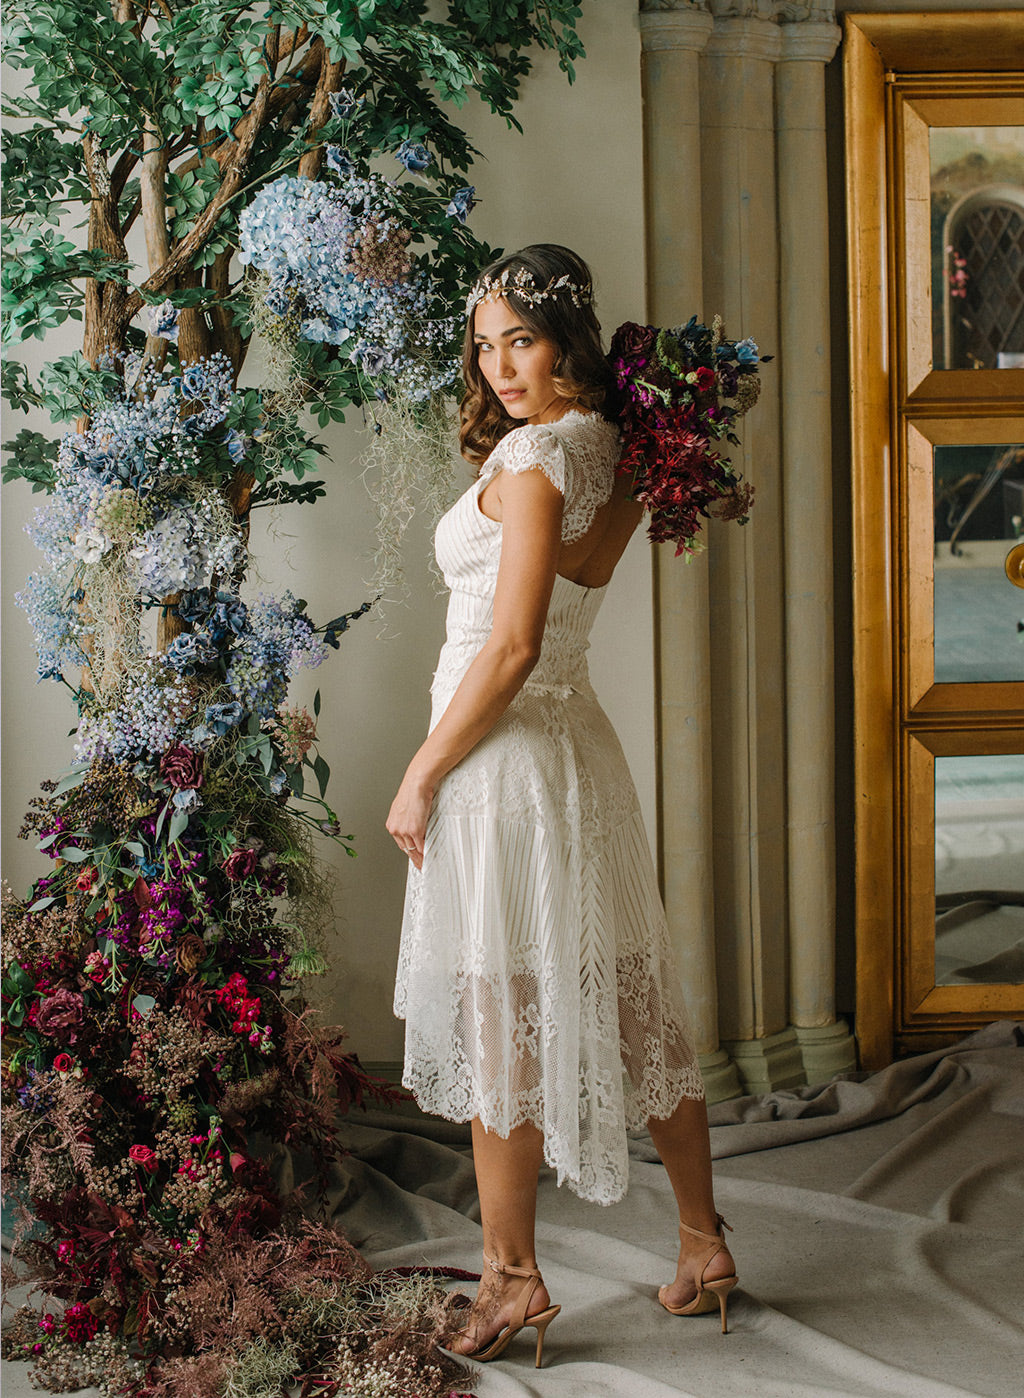 Antoinette HI-Lo Lace Skirt Claire Pettibone Ready to Wear Bridal Separates